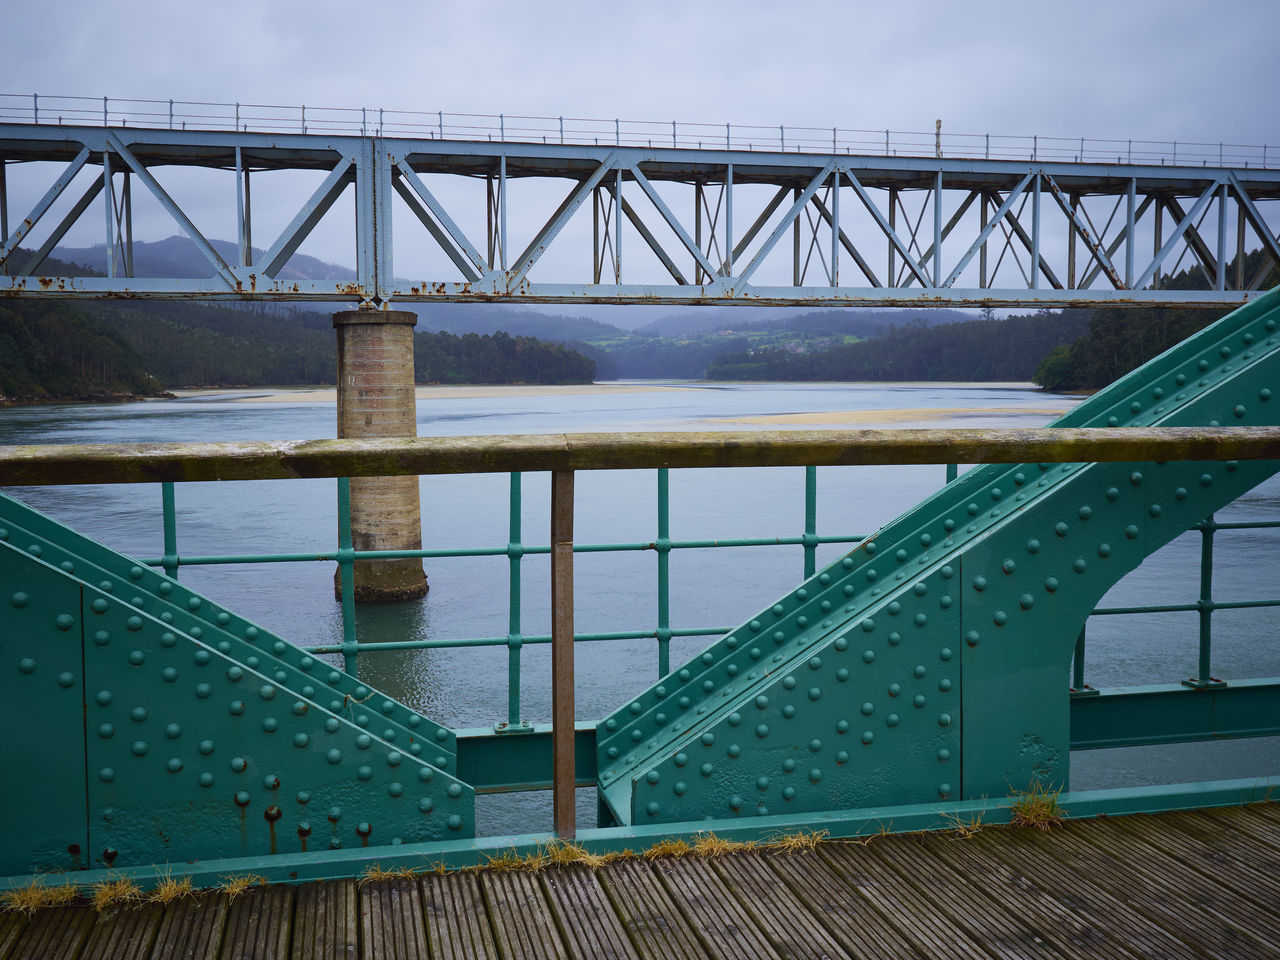 bridge - man made structure, railing, water, day, no people, wood - material, river, outdoors, sky, nature, architecture, close-up